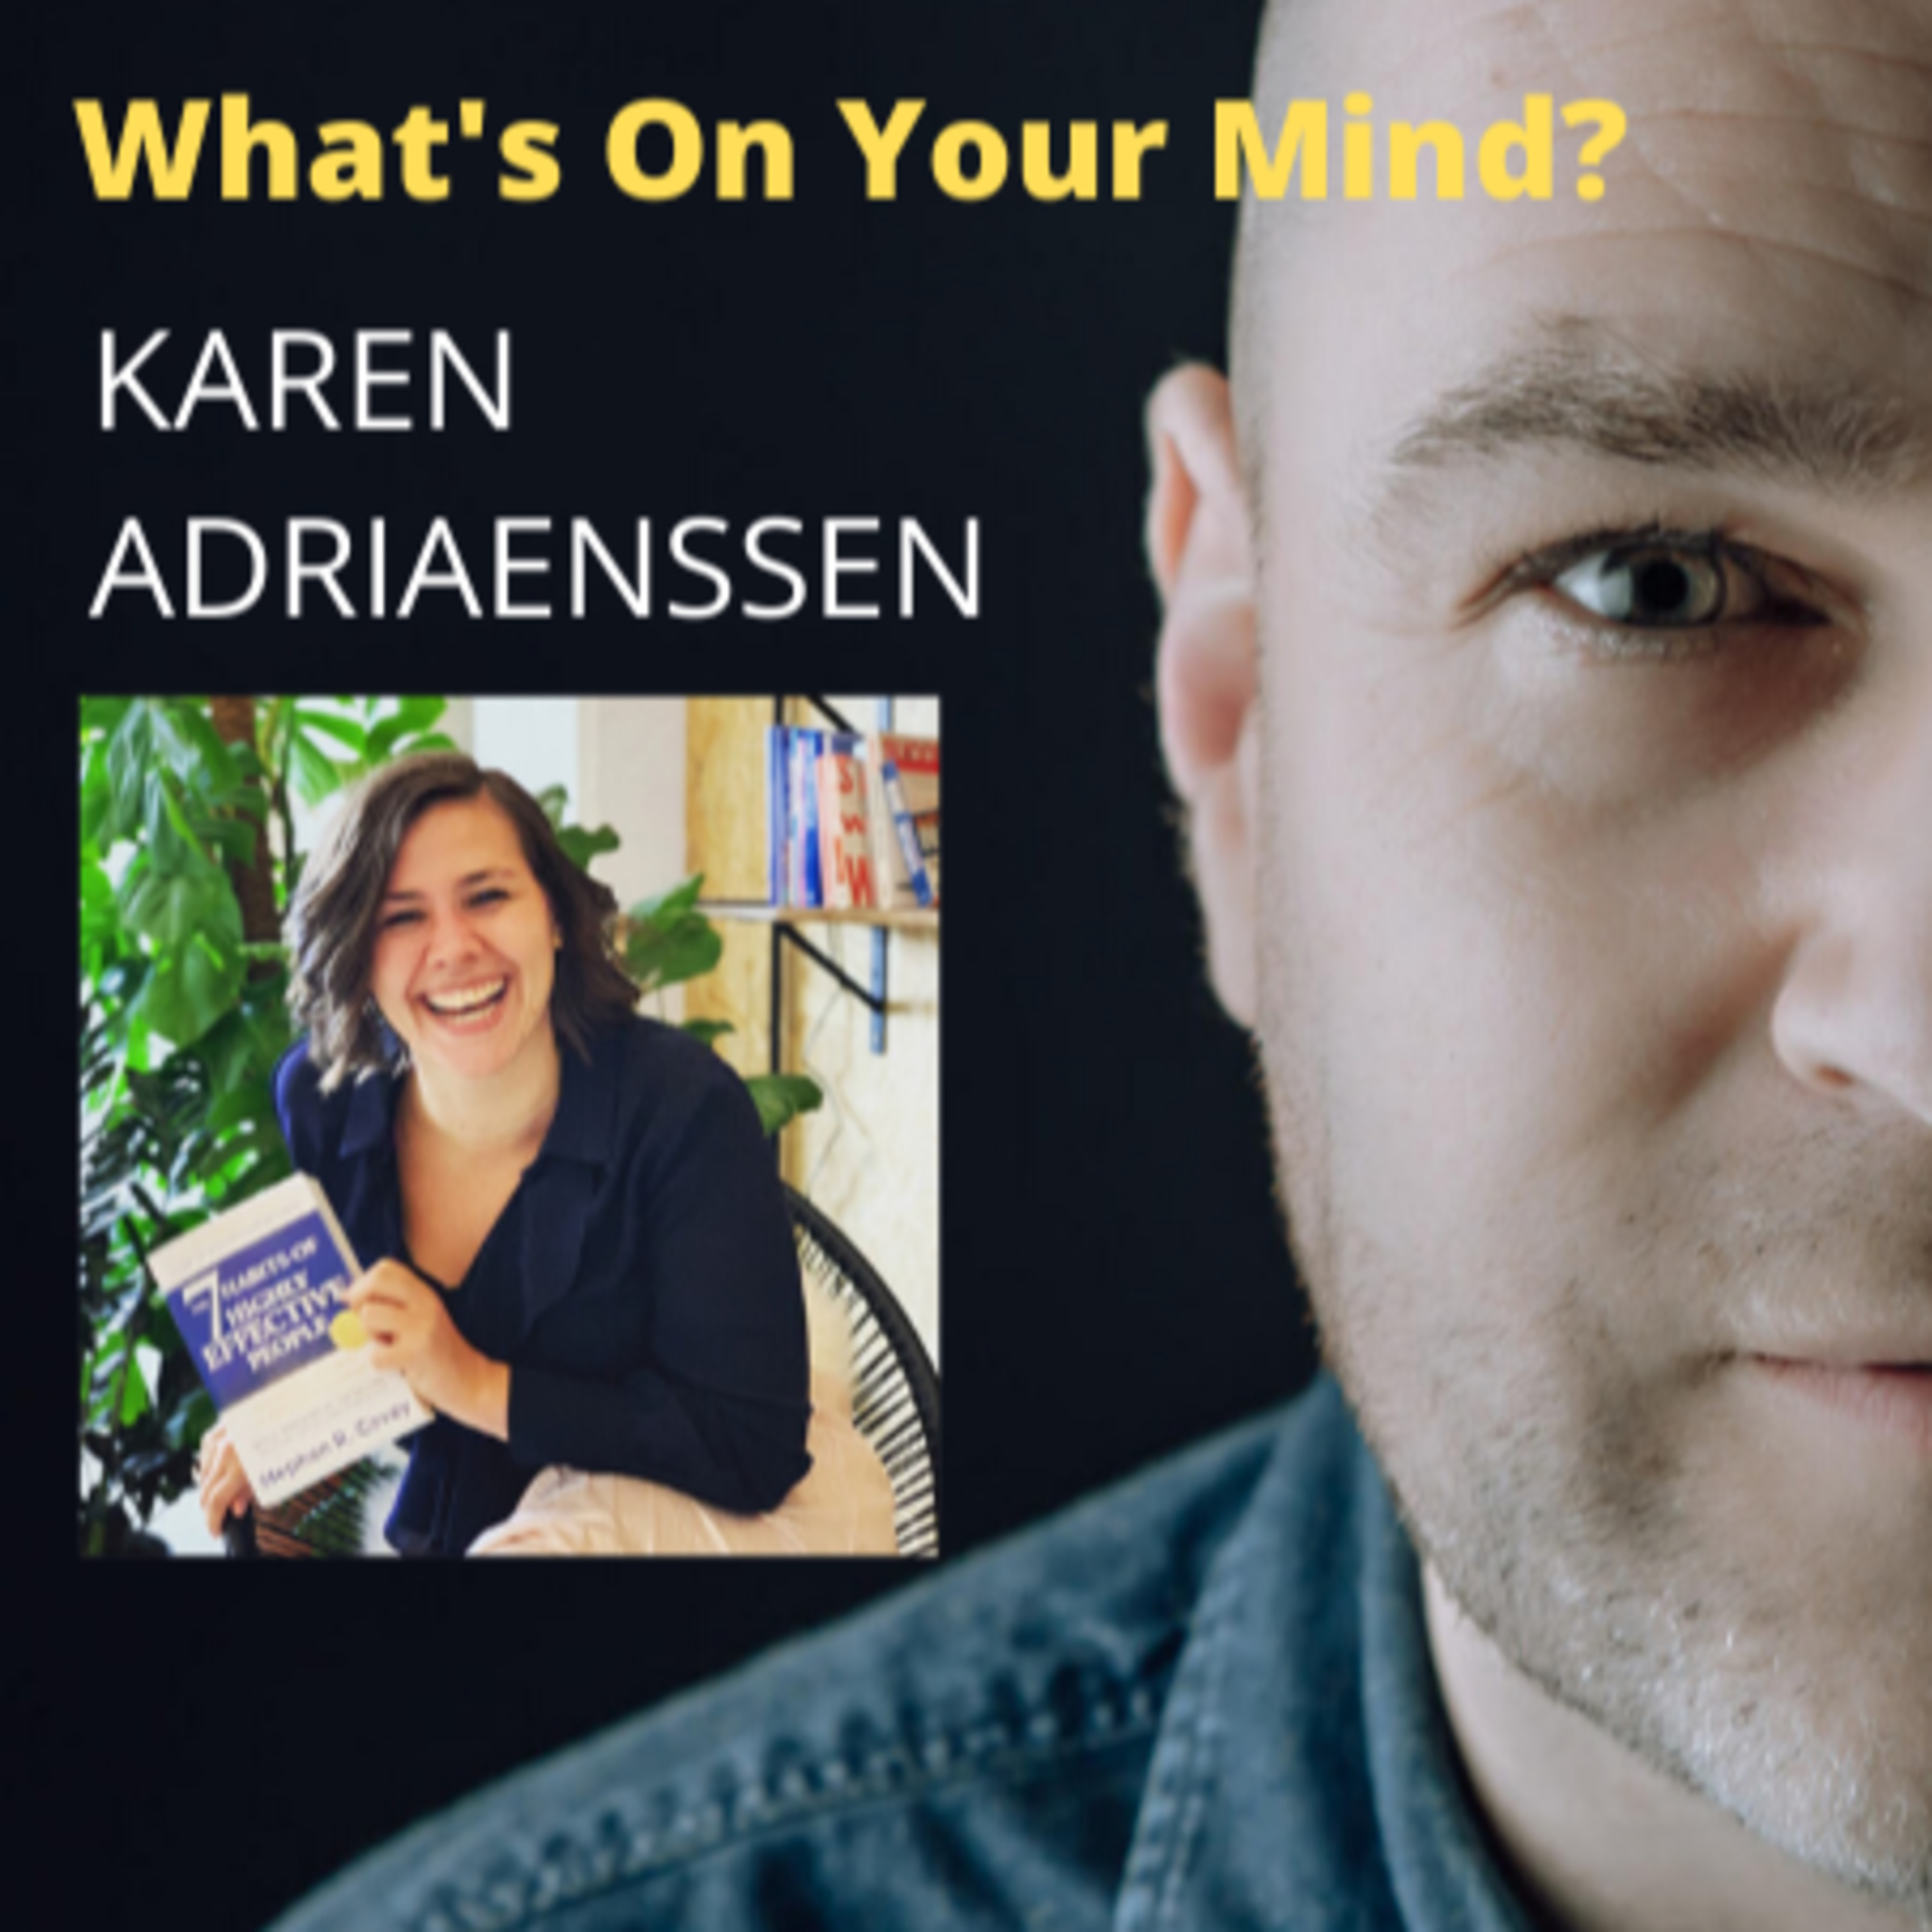 What's On Your Mind 15: Karen Adriaenssen